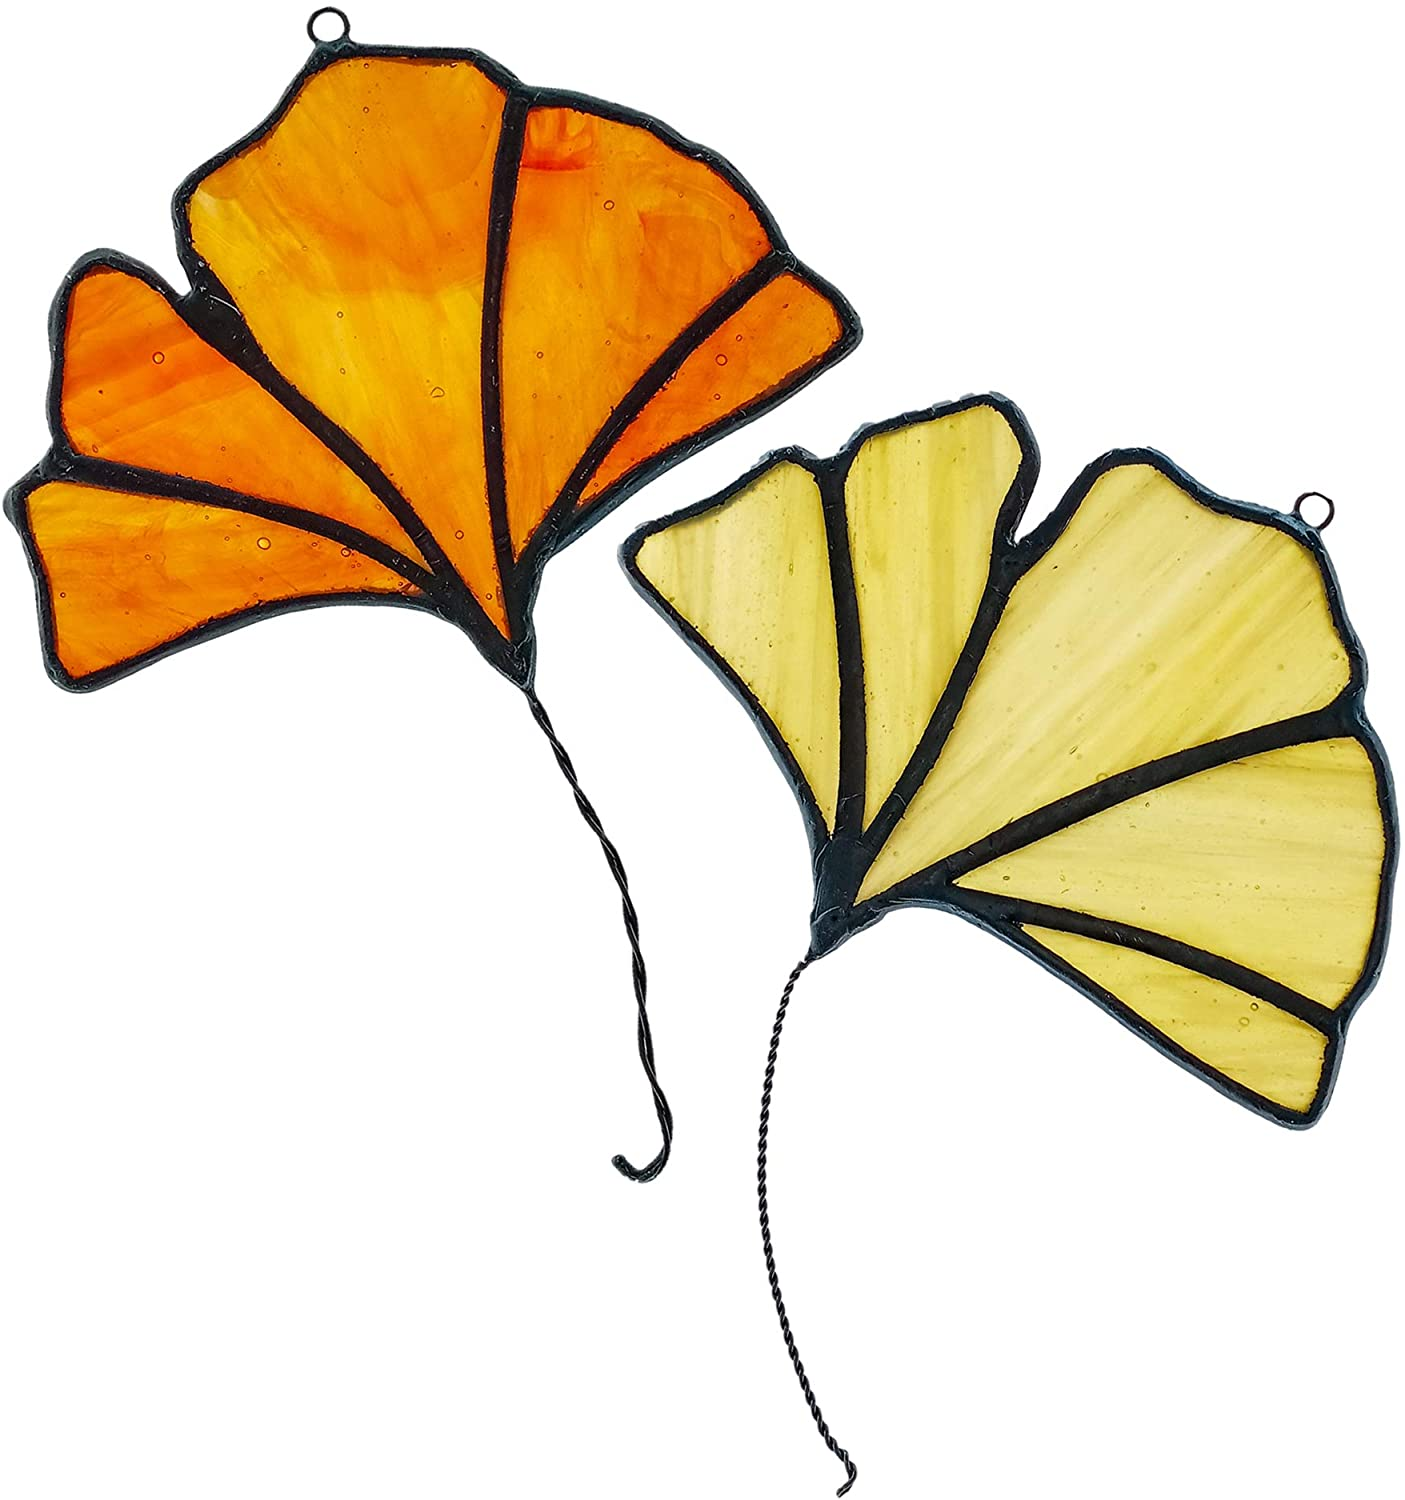 HAOSUM STAINED GLASS WINDOW HANGINGS GINKGO TREE LEAF FALL AUTUMN DECORATION 2PCS 4X3 INCHES